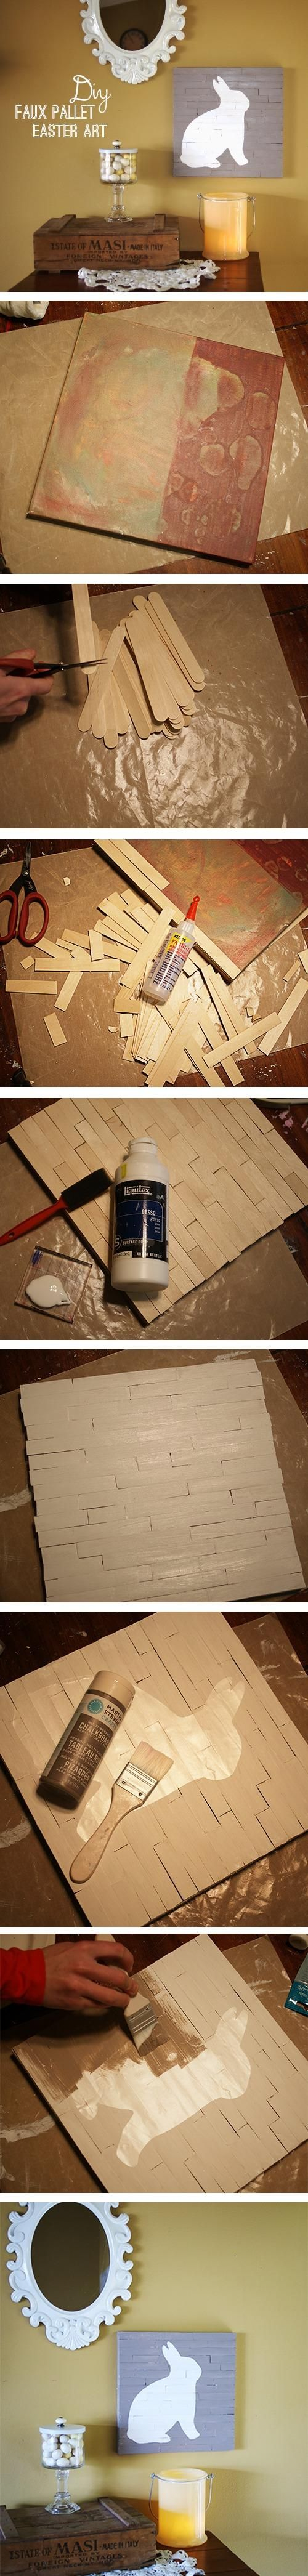 Make Faux Wood Pallet Art I think would be great done with a leaf an not a rabbit!